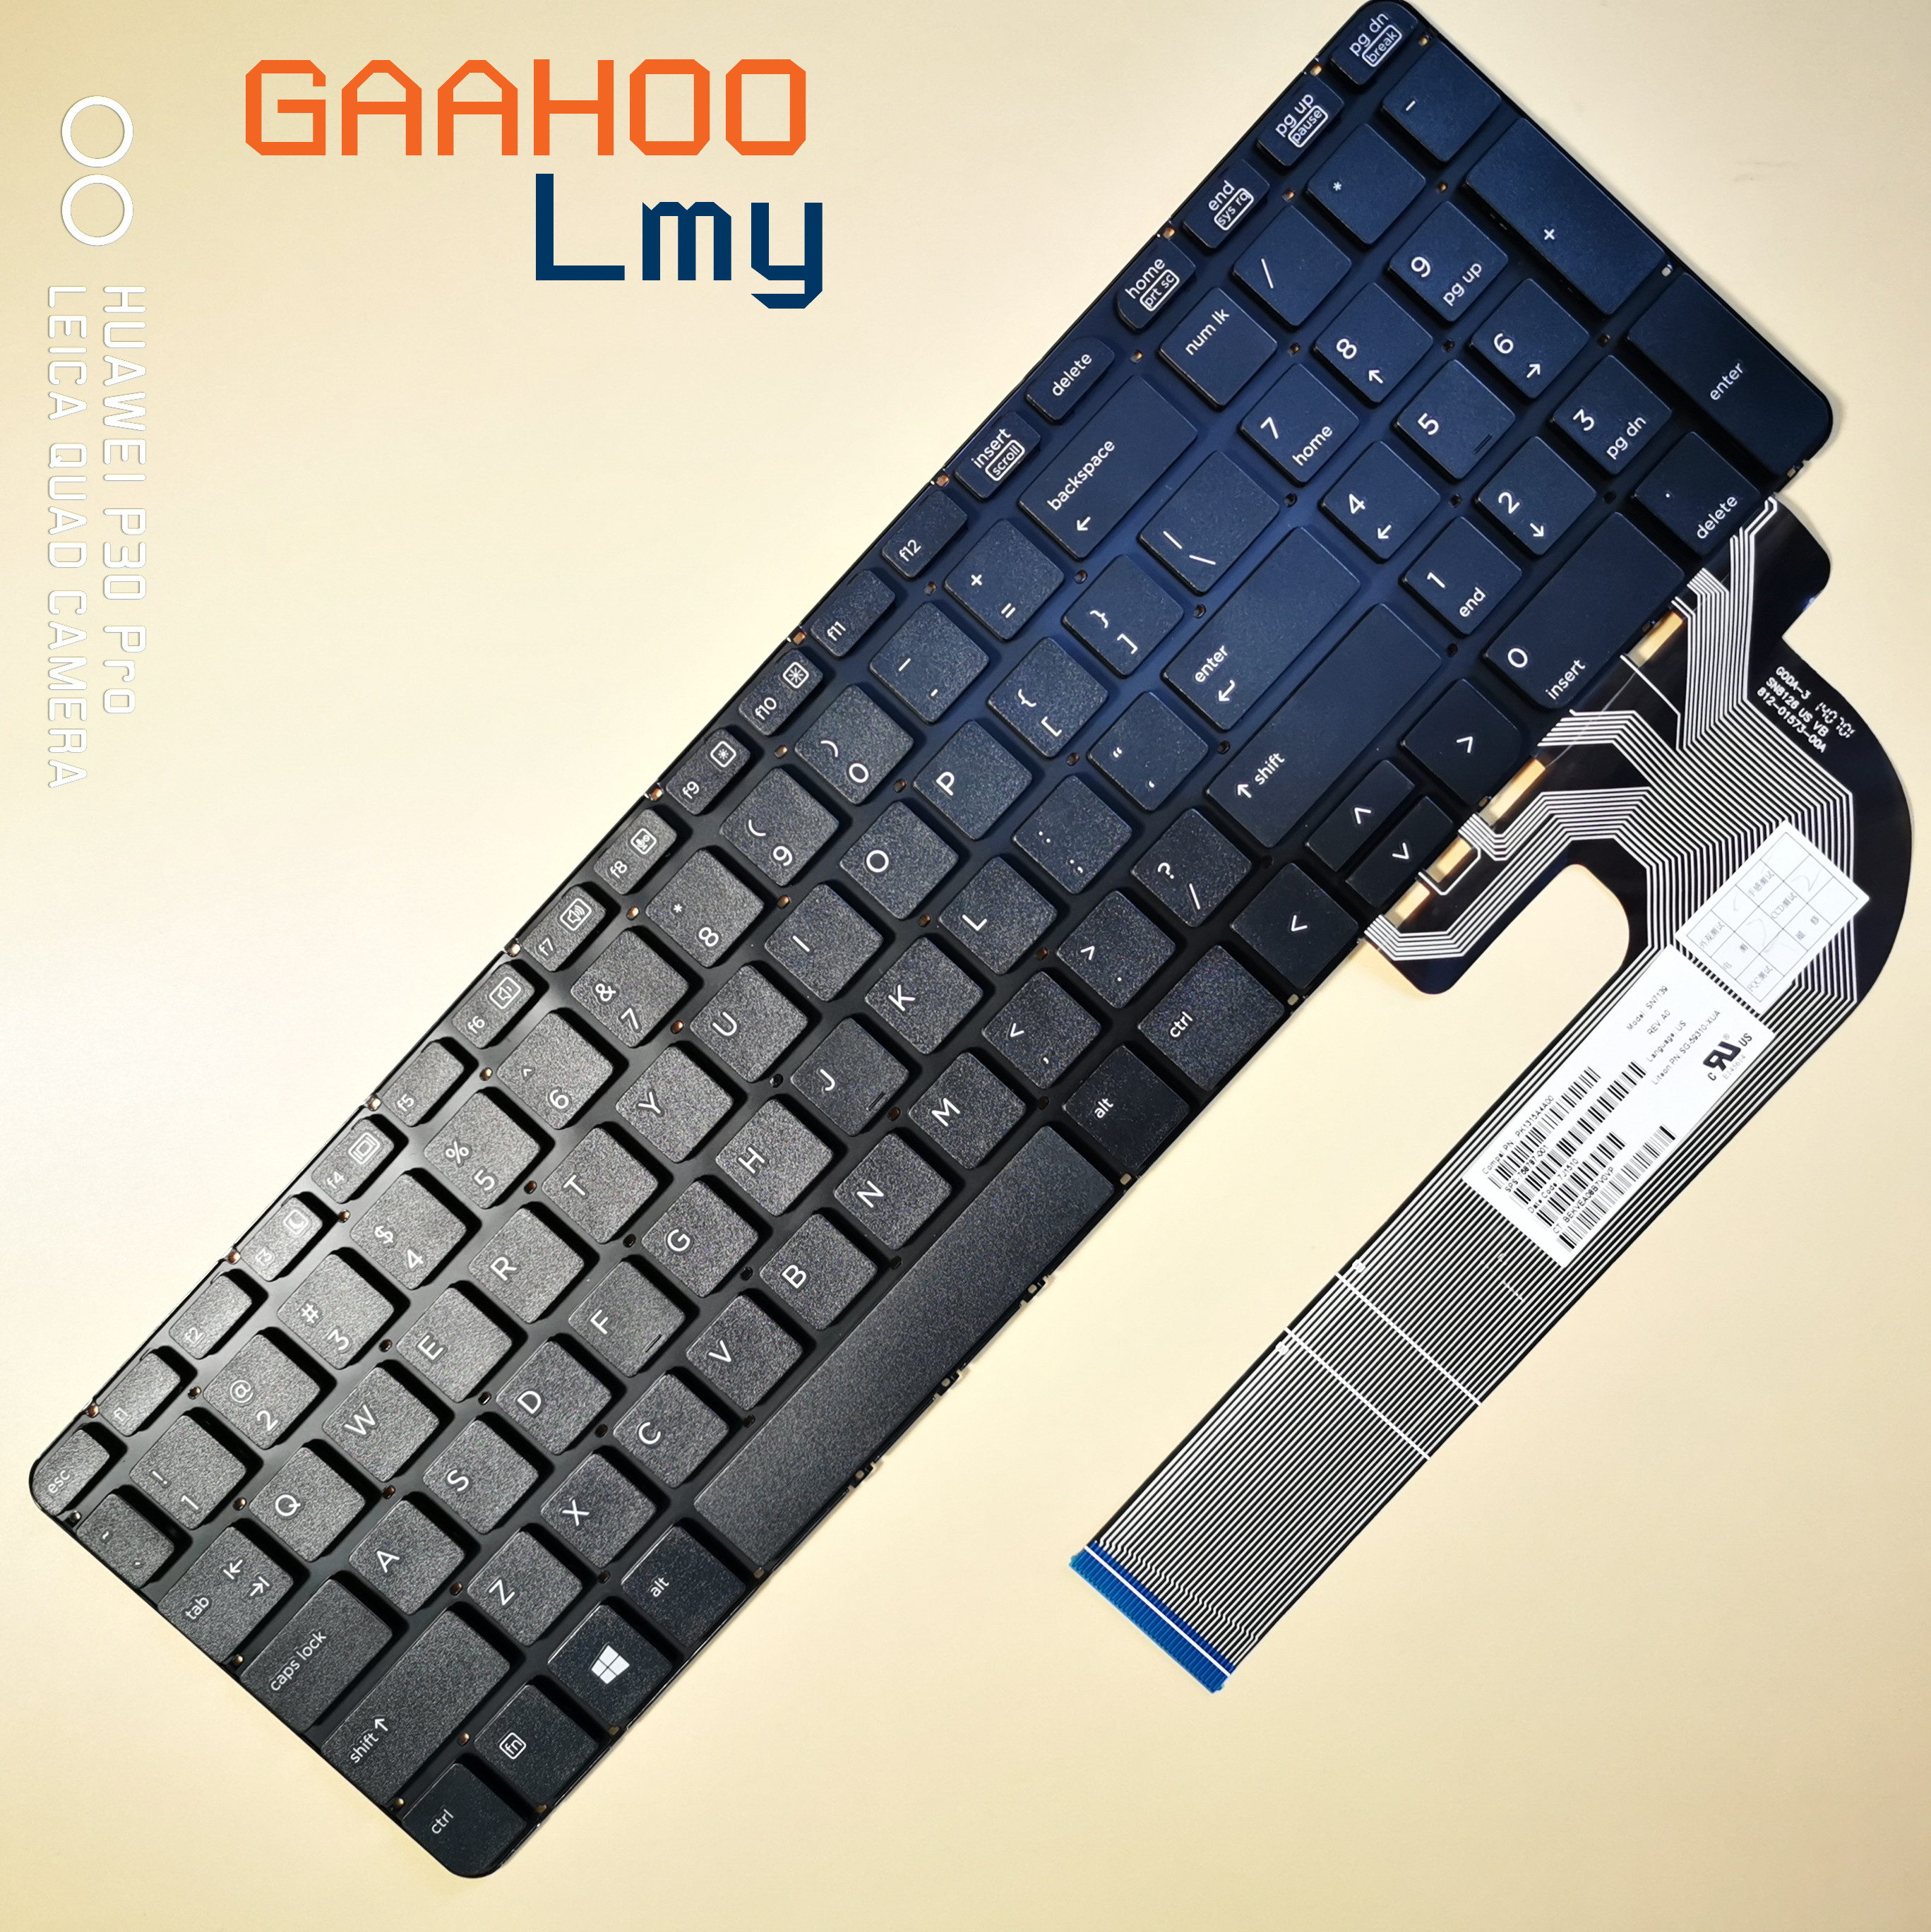 Brand New Orig US Keyboard For HP Probook 450 G0 450 G1 470 455 G1 450-G1 450 G2 455 G2 470 G0 G1 G2 Laptop Keyboard W/O  Frame